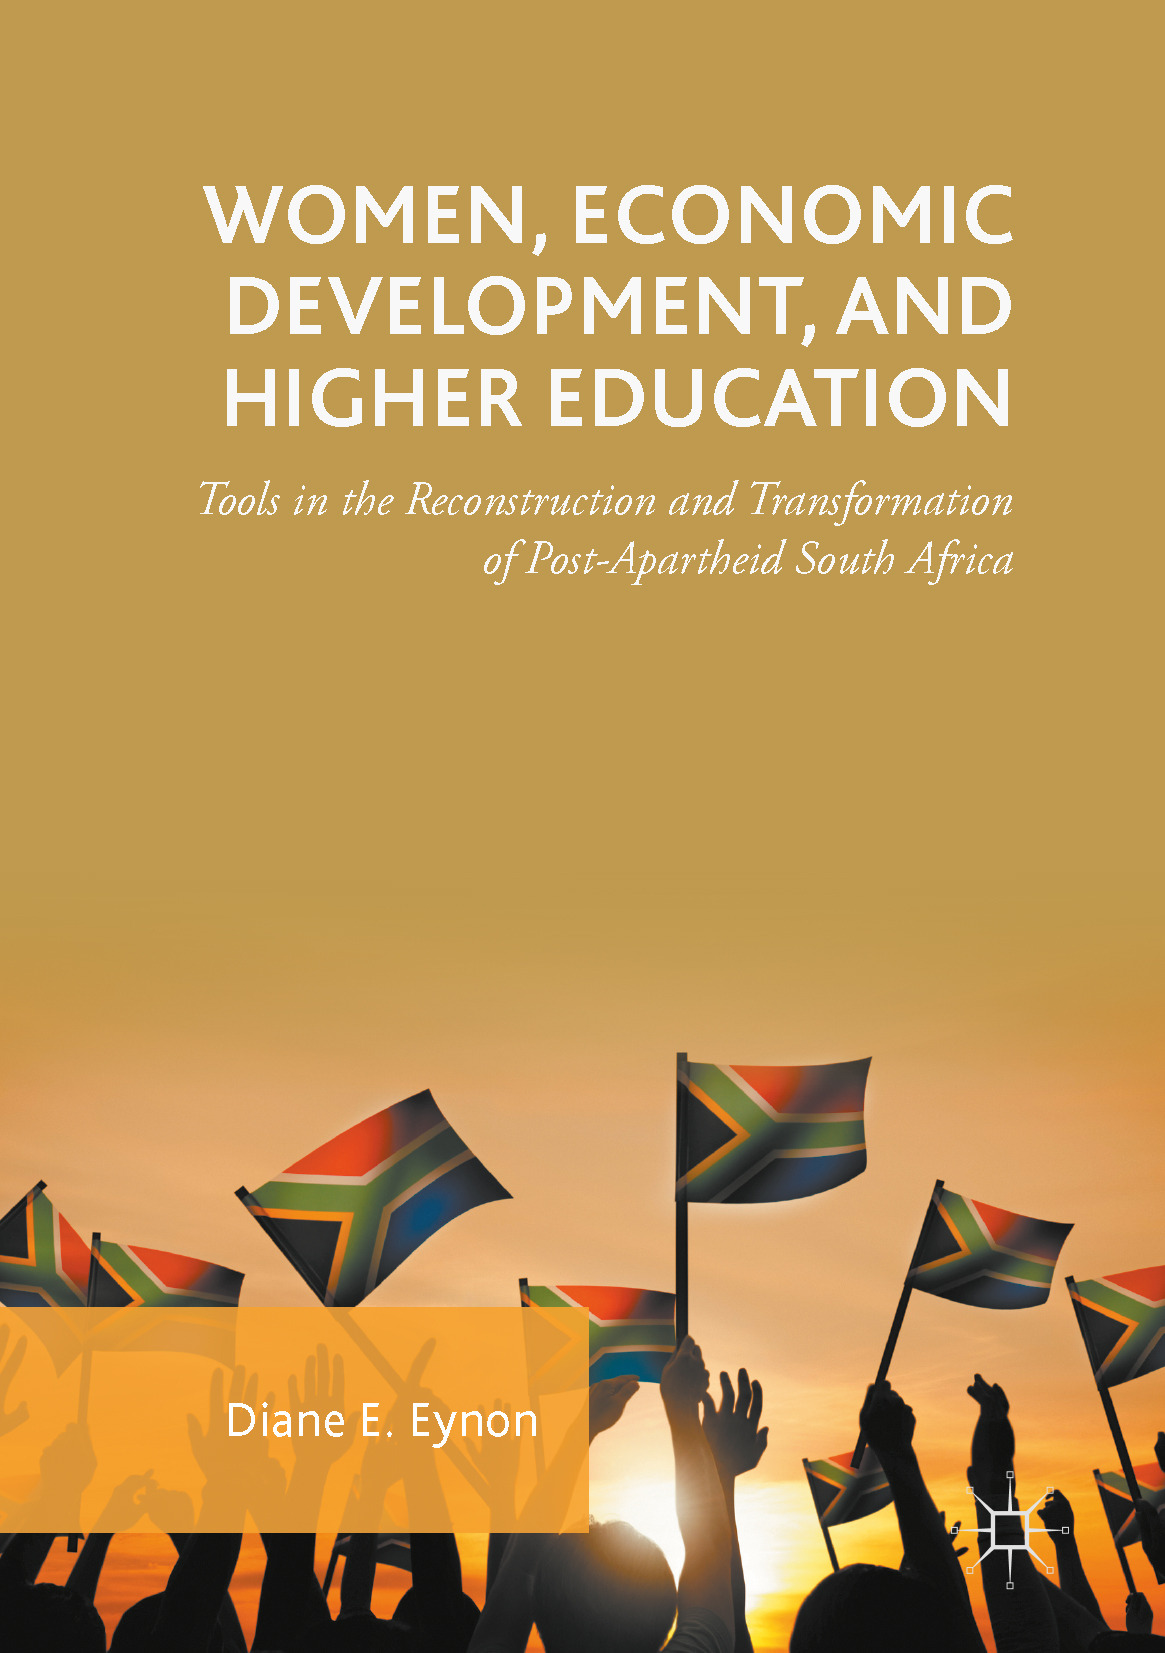 Eynon, Diane E. - Women, Economic Development, and Higher Education, ebook